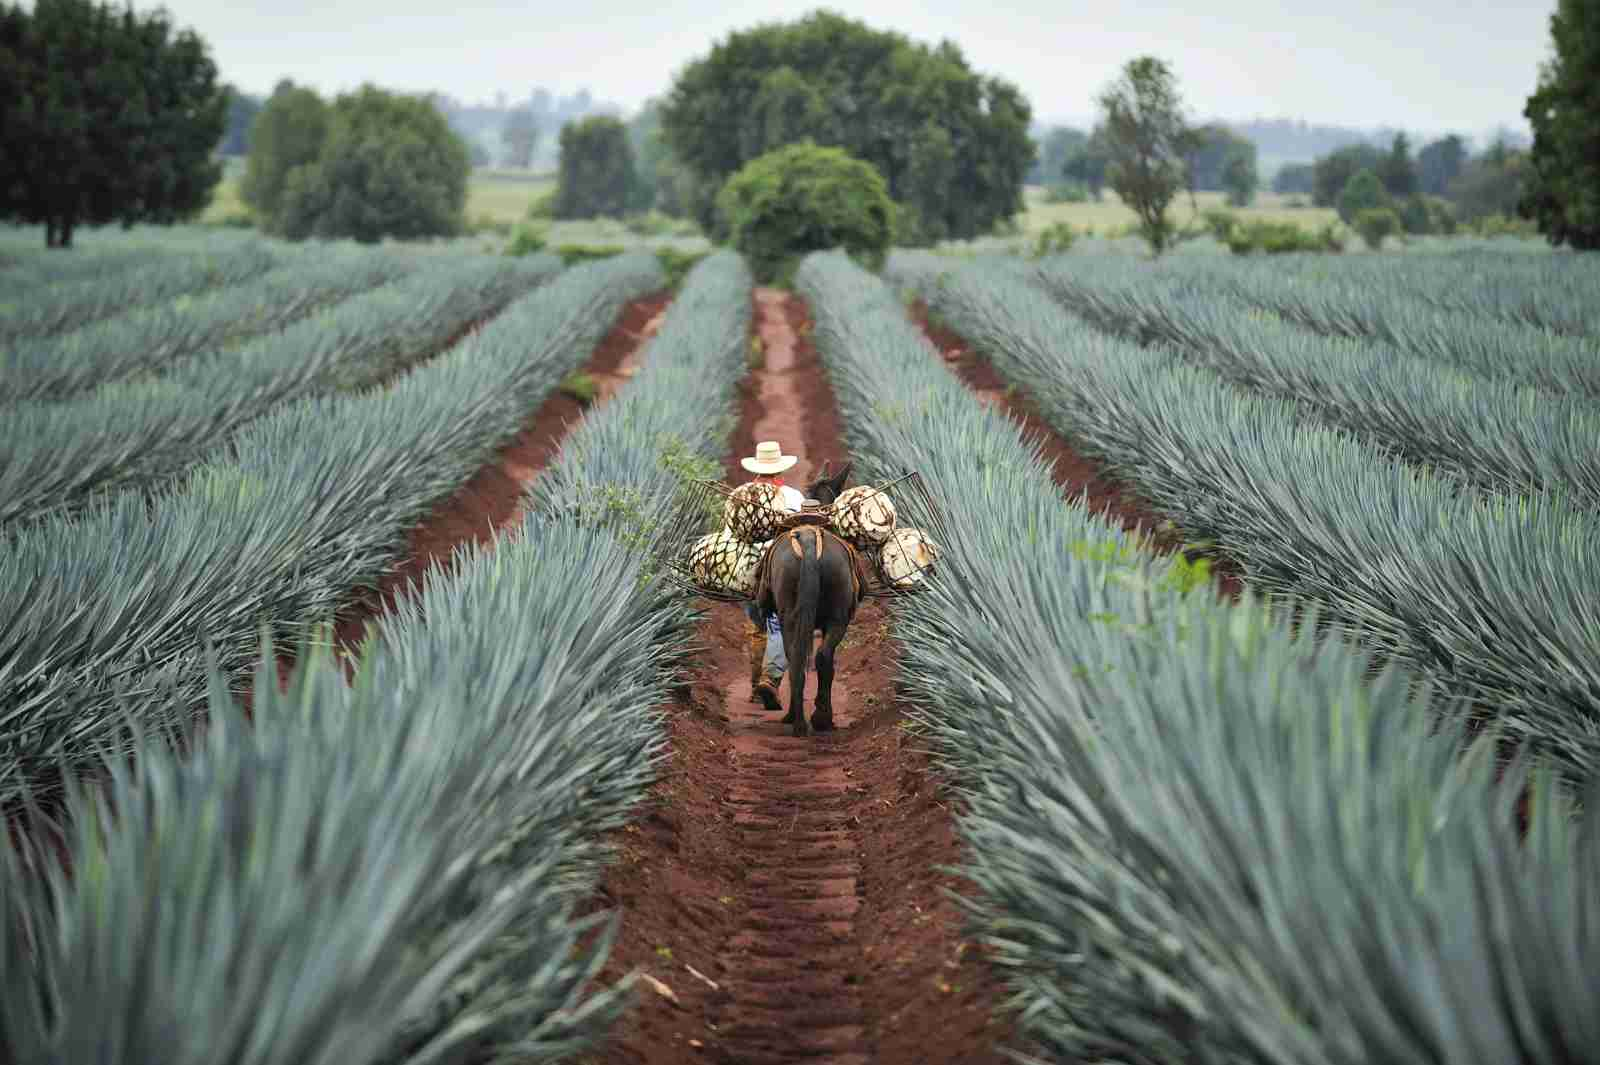 Tequila is harvested by donkey in certain regions of Mexico, like Jalisco, seen above. (Photo via Shutterstock)